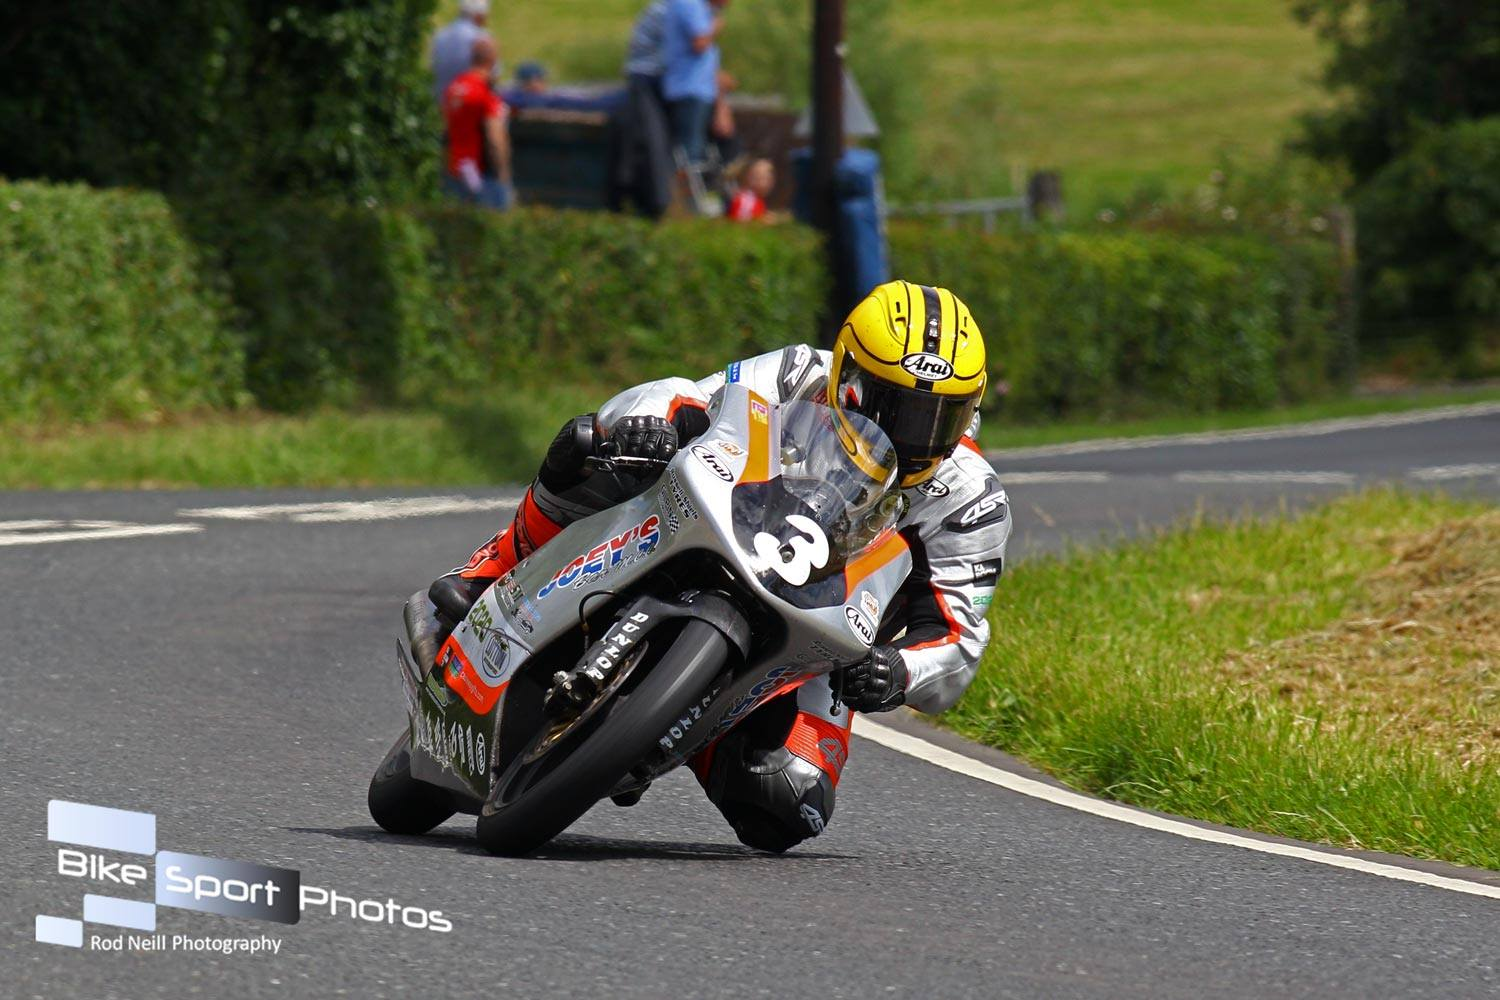 Enniskillen: Race Day Analysis – The Results, The Competition, The Super Heroes Feats Chronicled